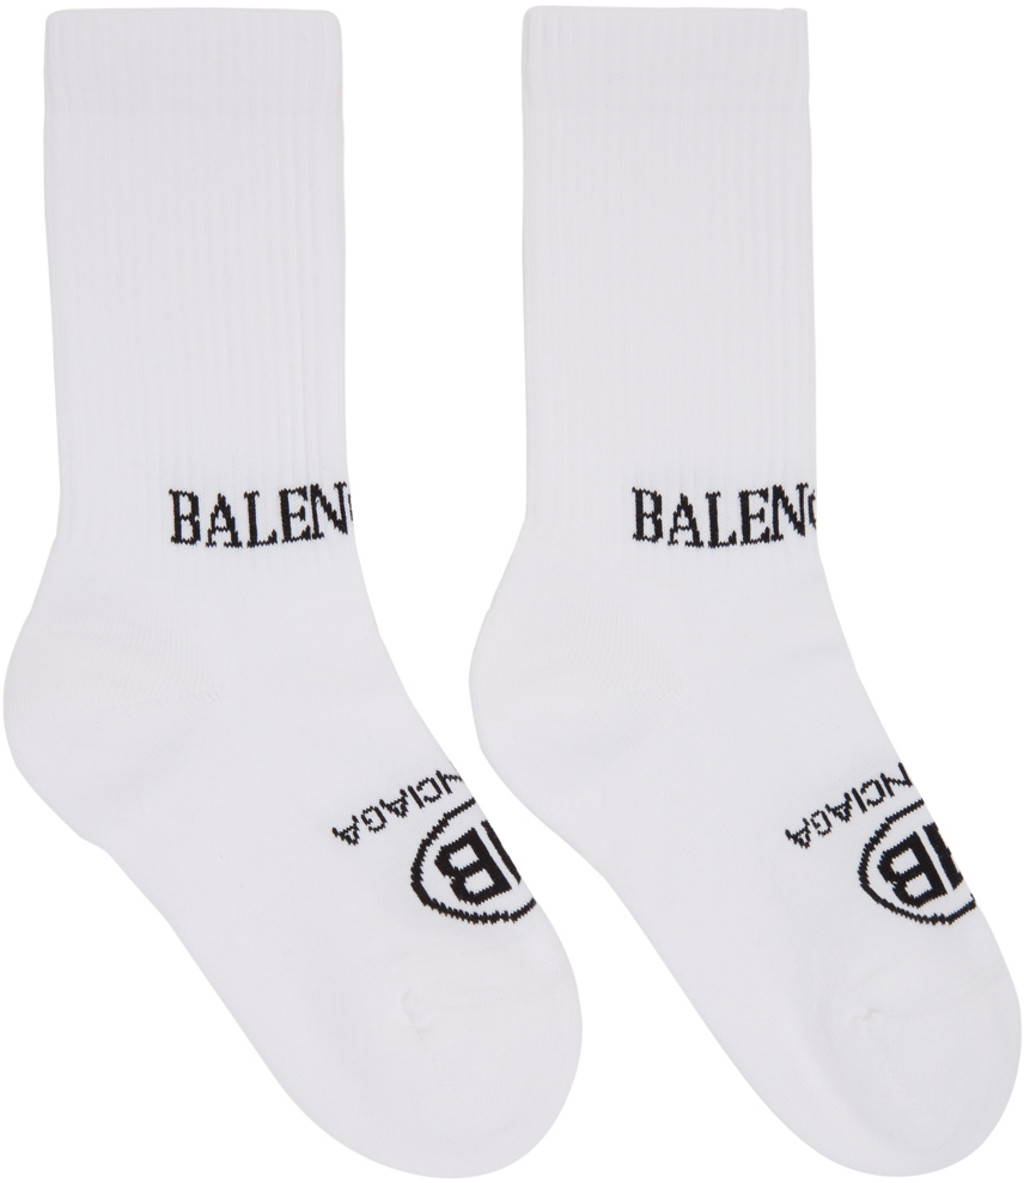 White Tight Logo Socks Balenciaga Many Kinds Of Outlet Comfortable FzafP1oT